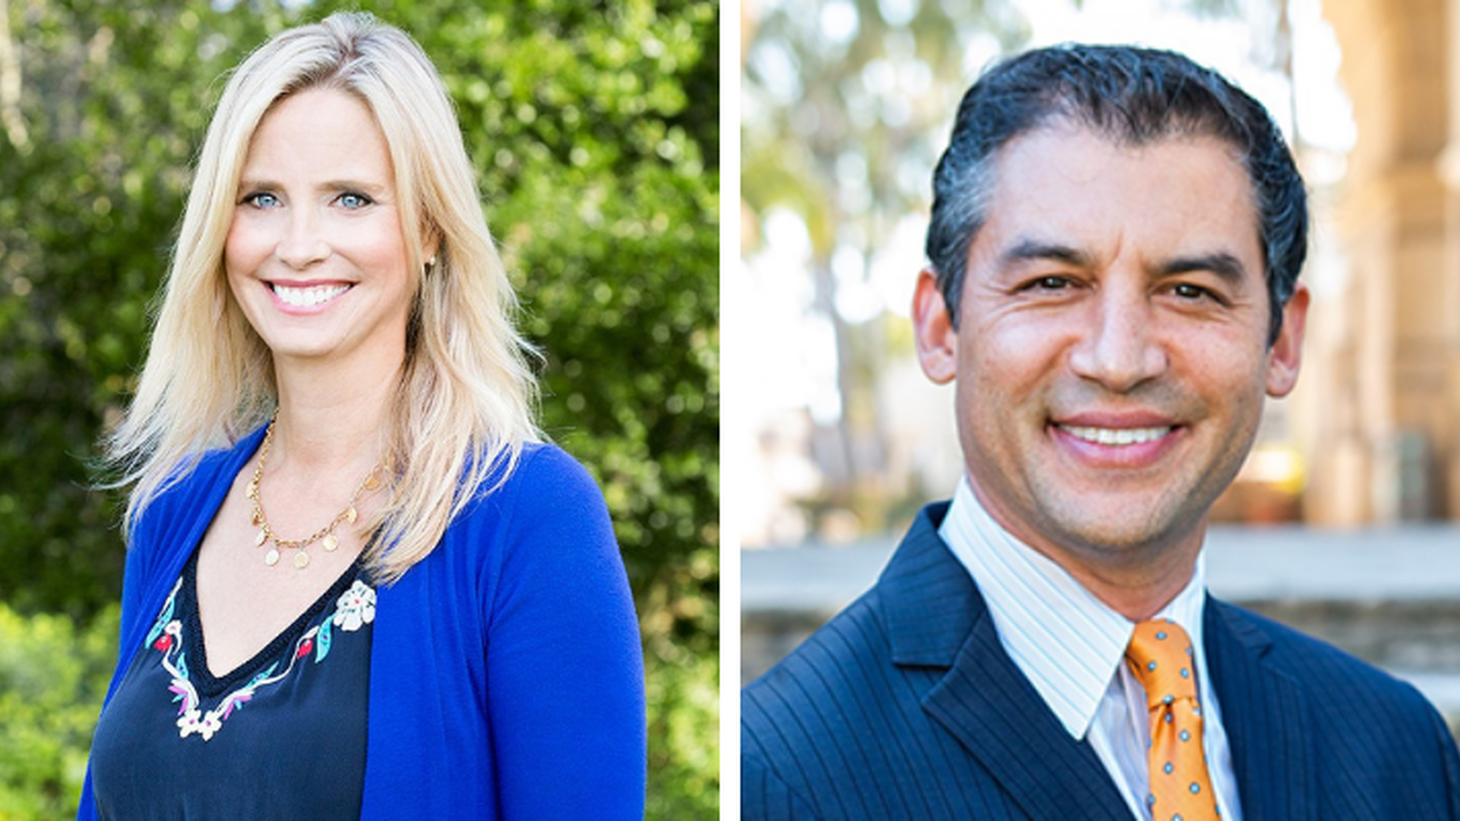 Laura Capps and Das Williams are running against each other for Santa Barbara County First District Supervisor.